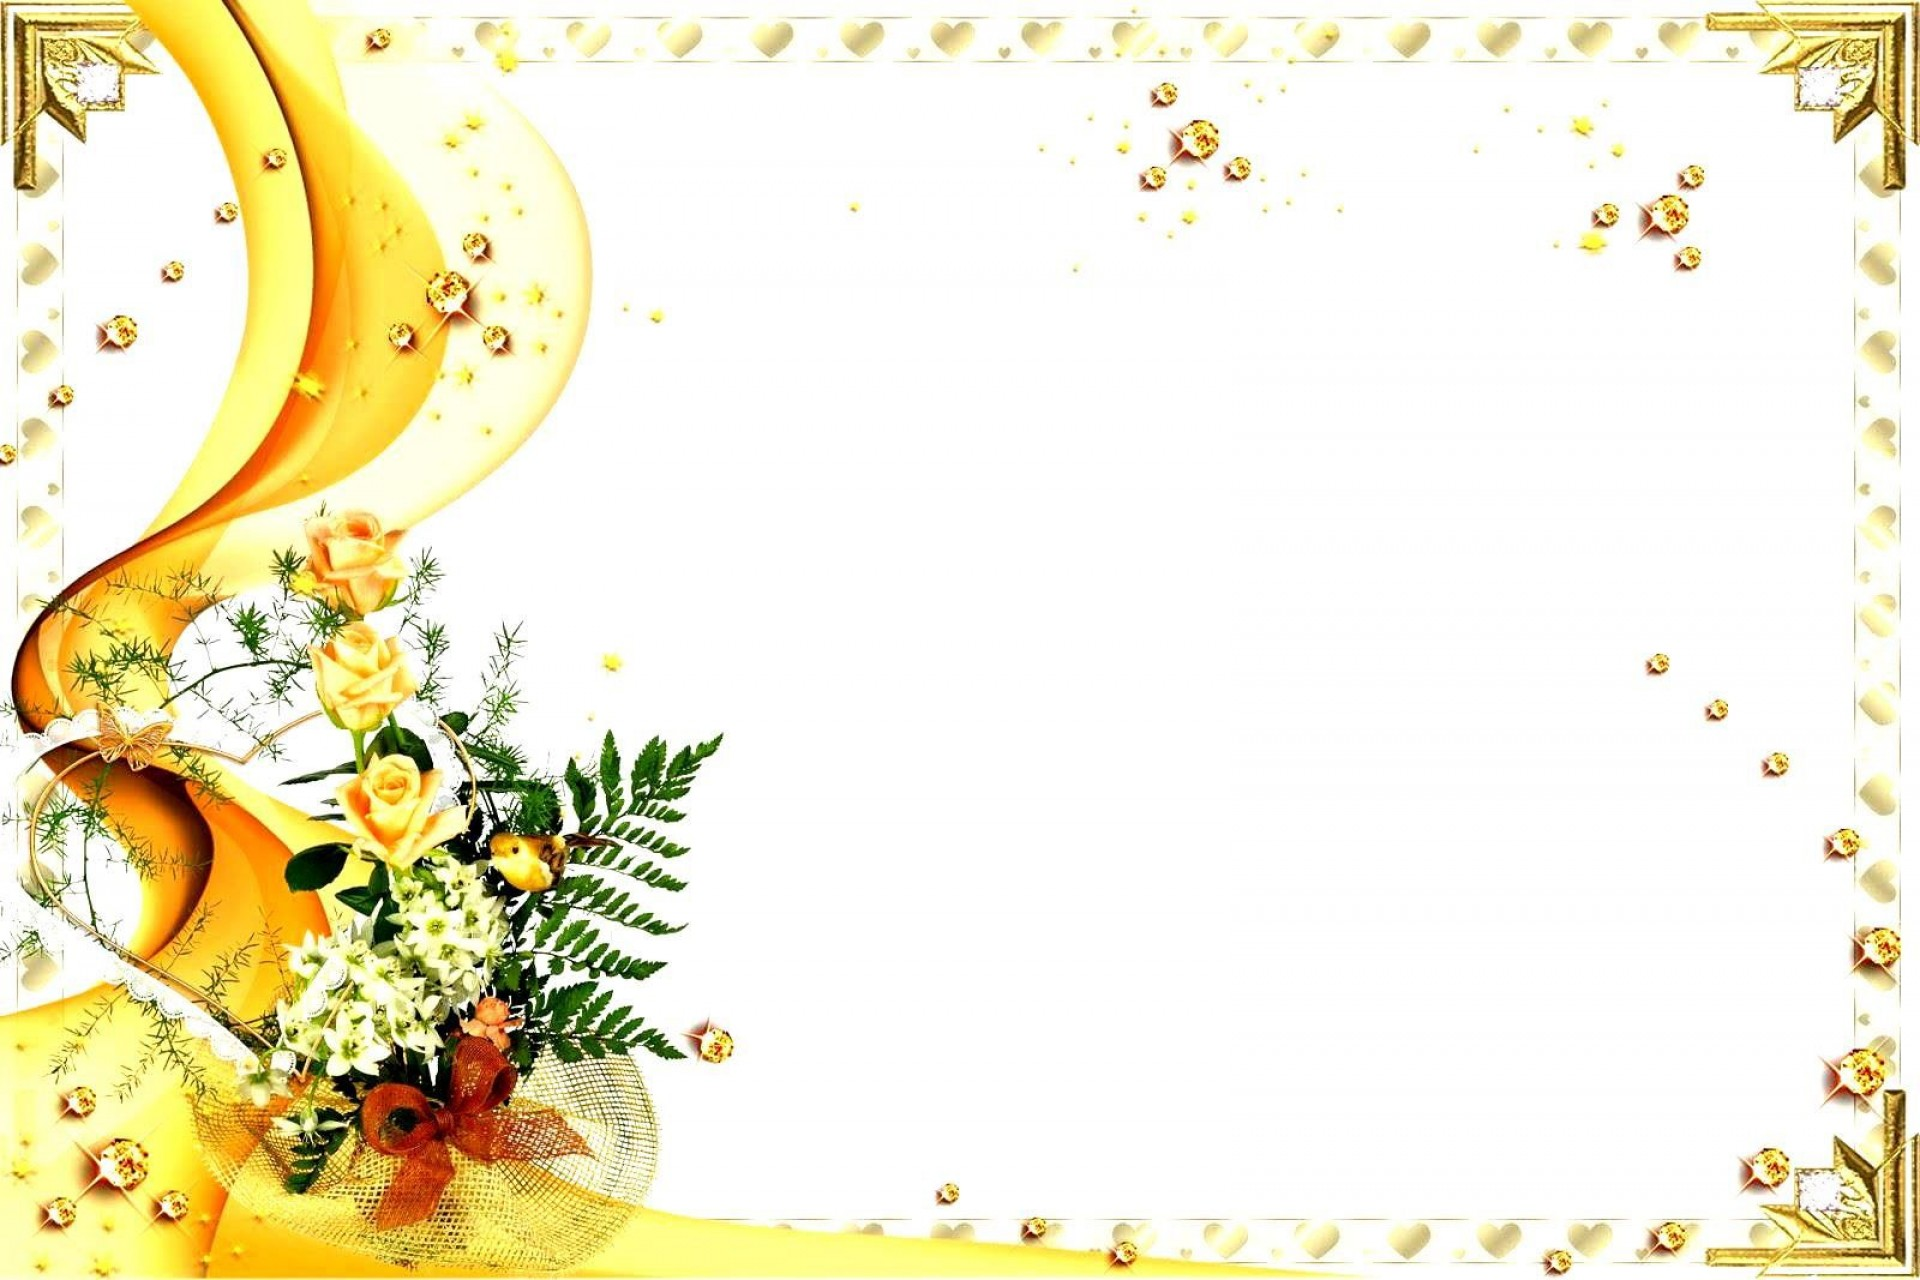 007 Unique Free Invitation Template Word Image  Wedding For Tamil Christma Party1920